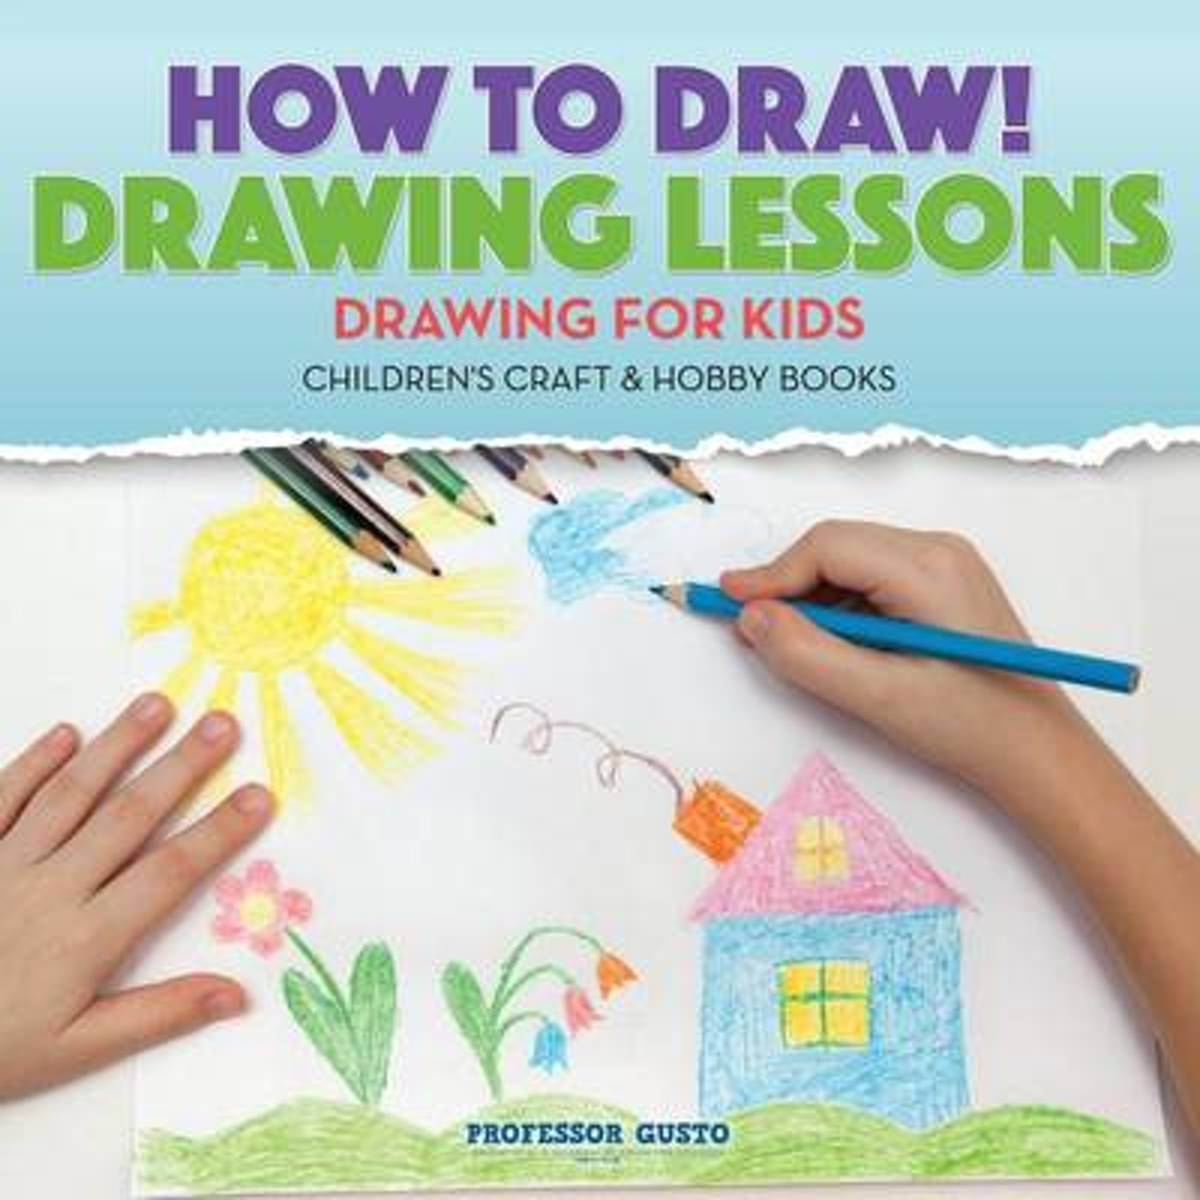 How to Draw! Drawing Lessons - Drawing for Kids - Children's Craft & Hobby Books